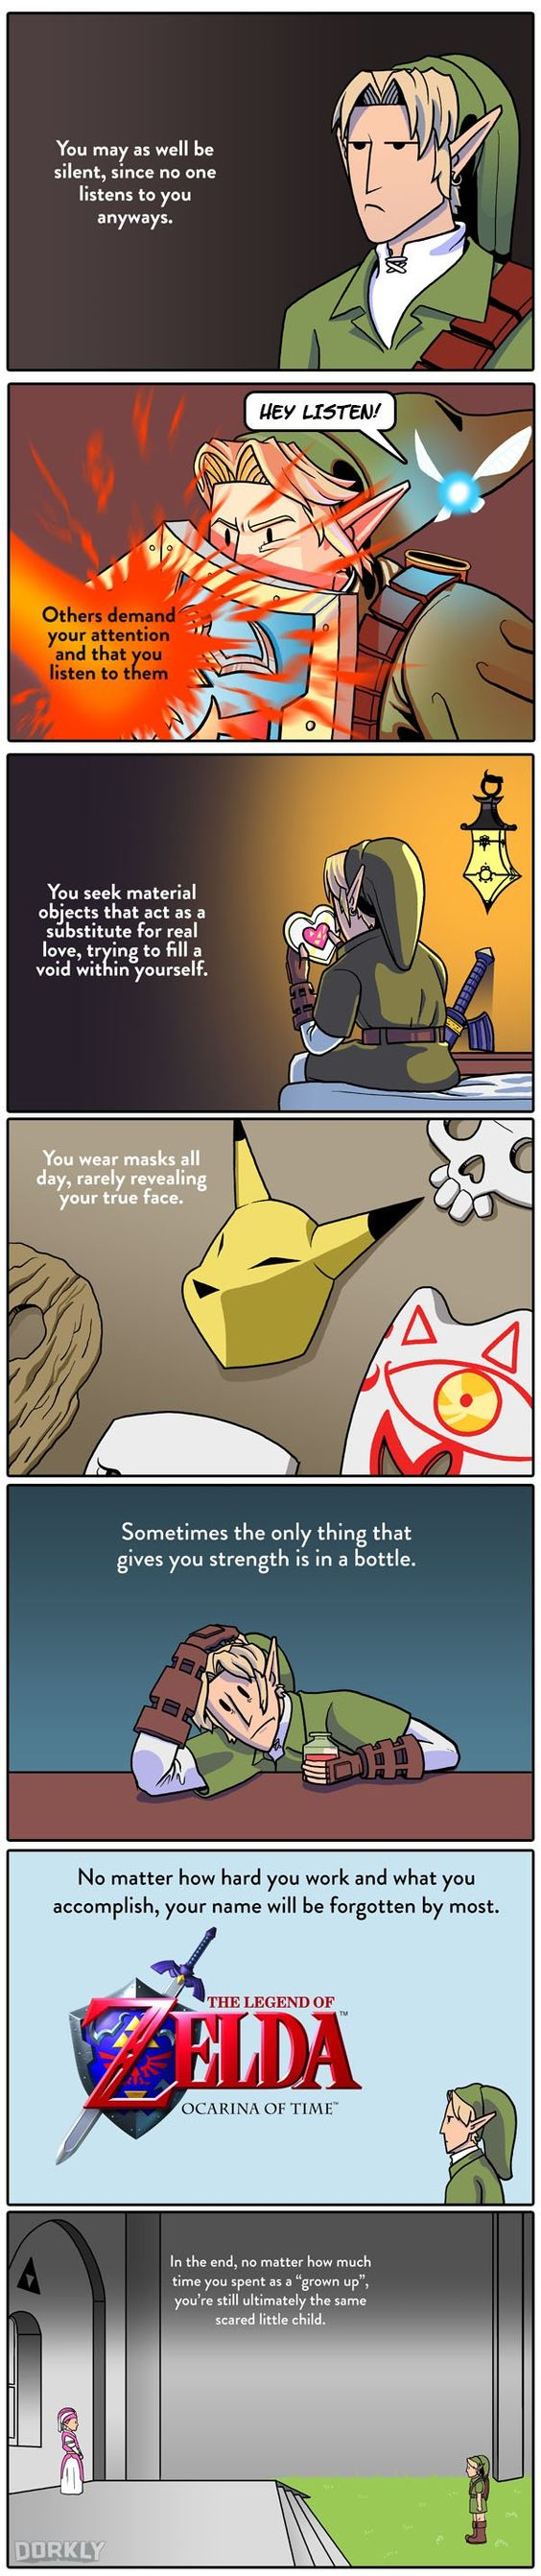 Why does legend of Zelda have to be so depressing